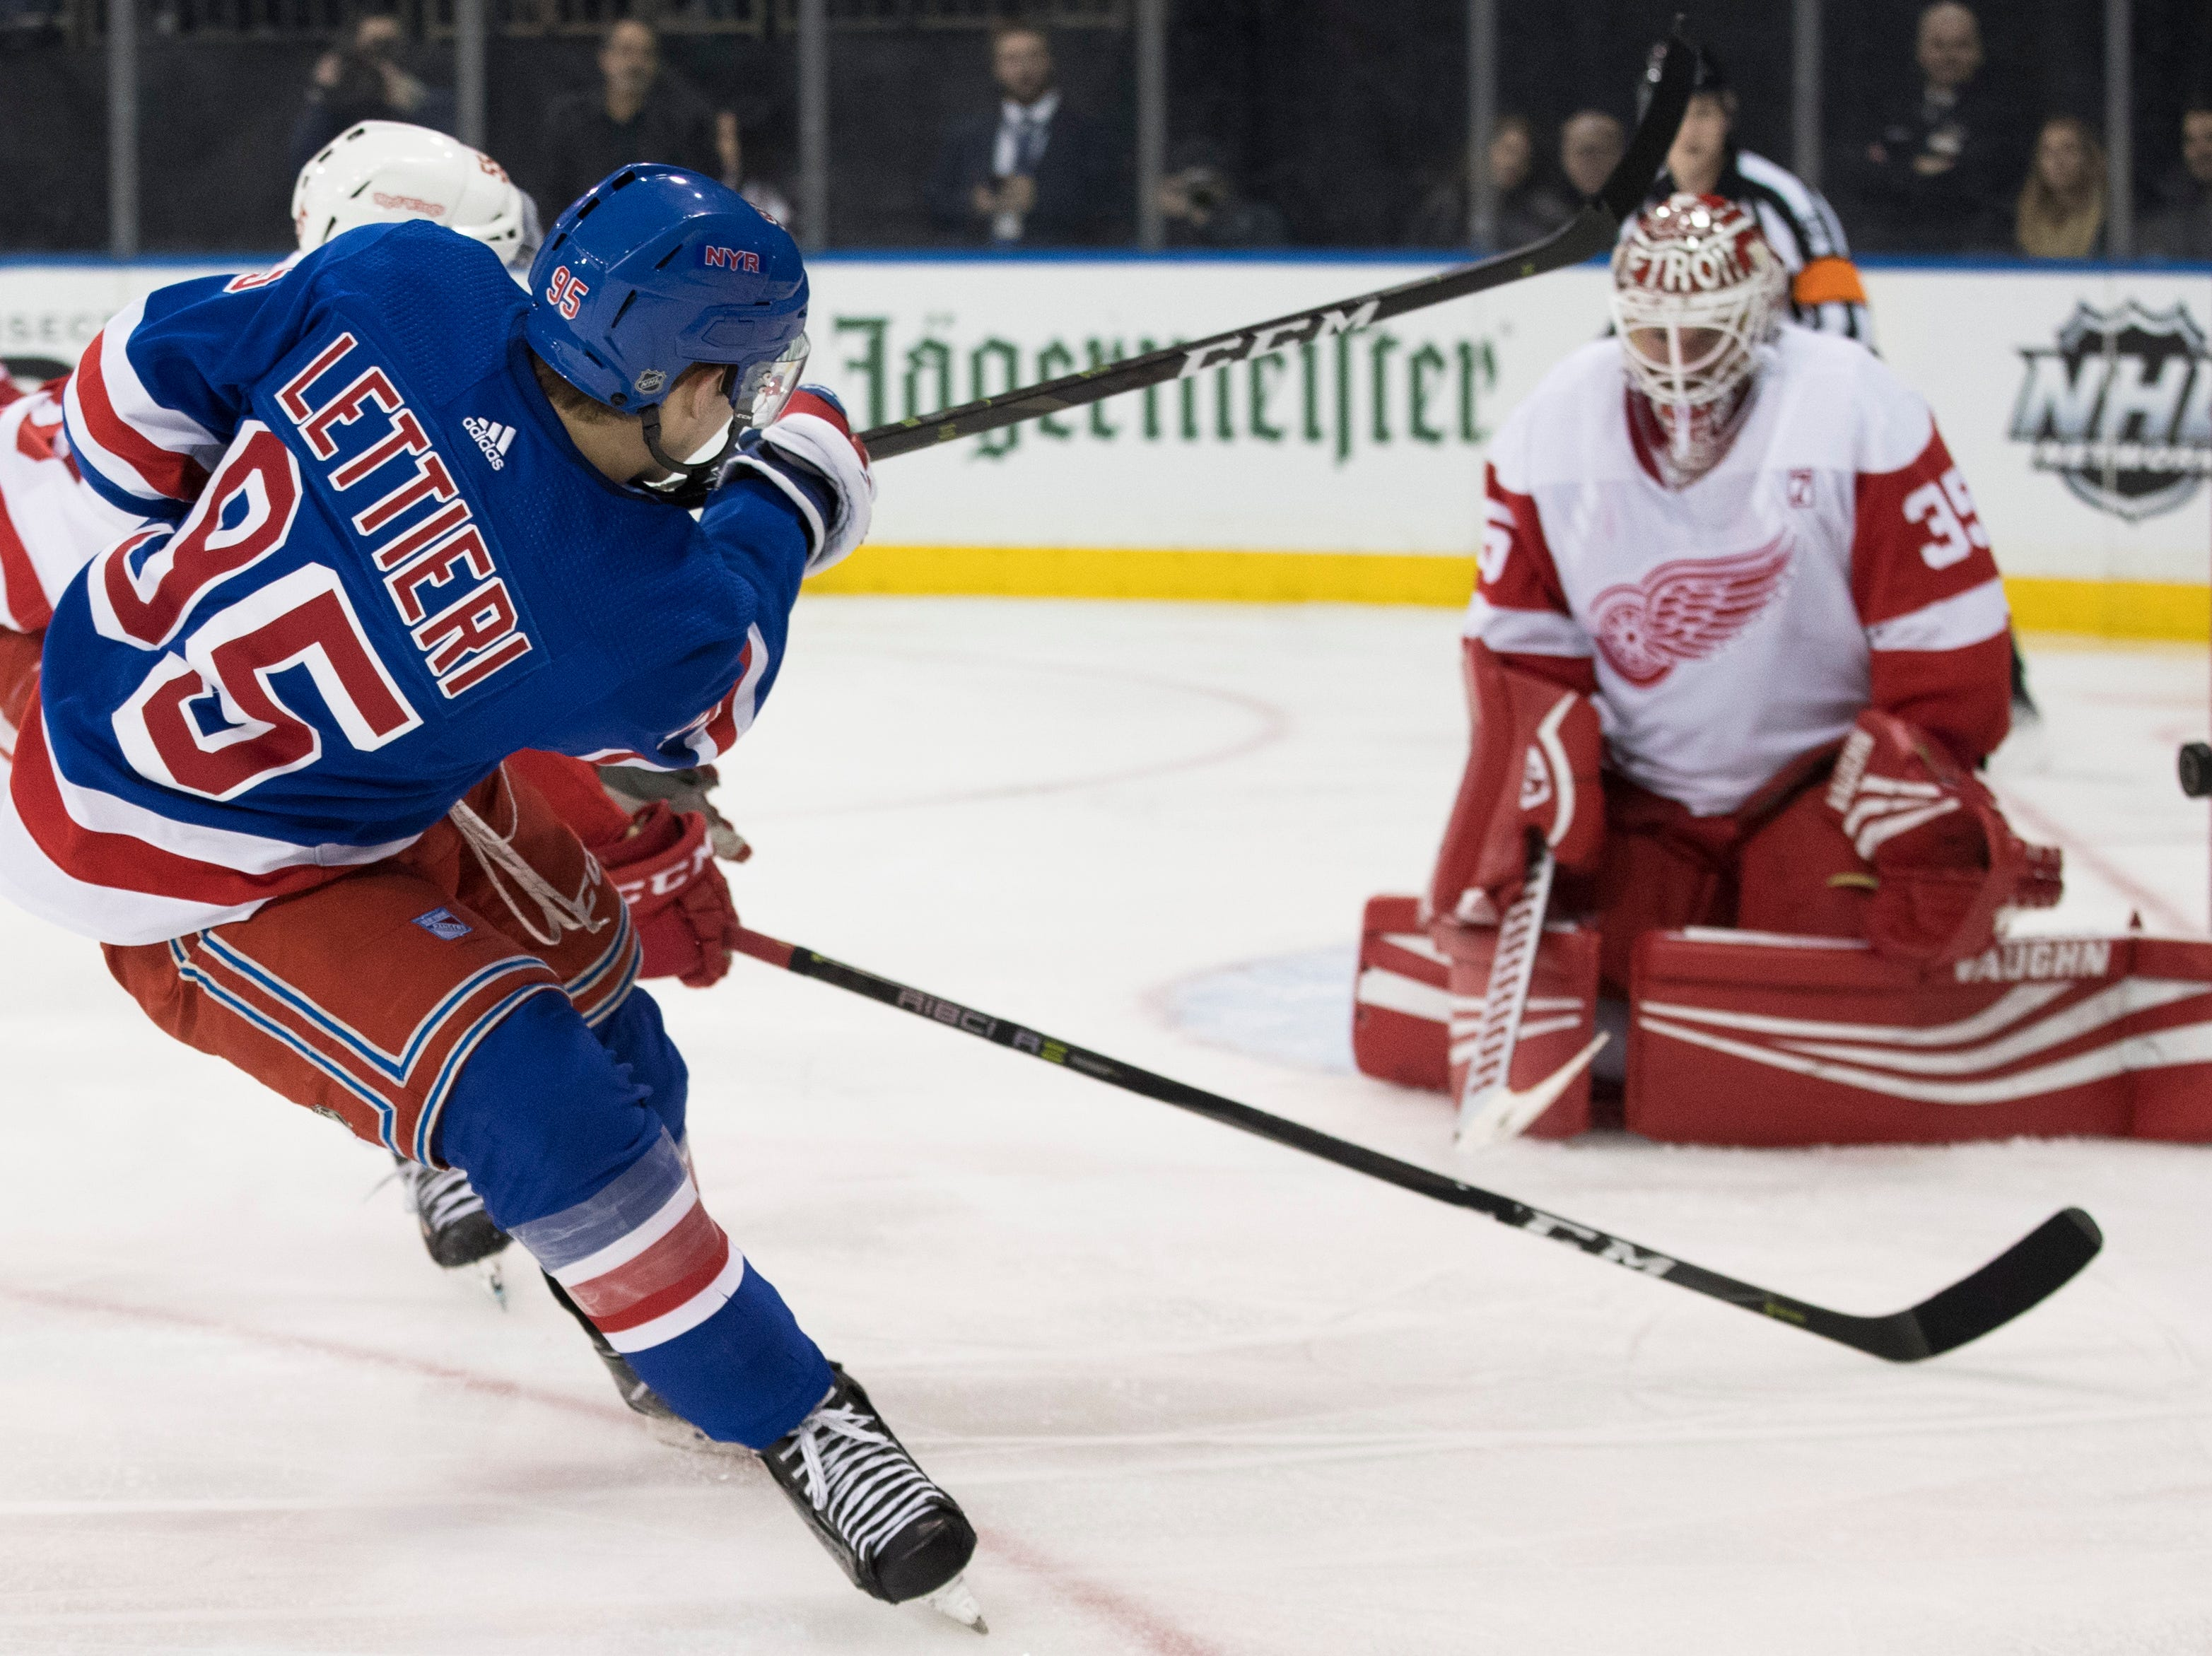 Detroit Red Wings goaltender Jimmy Howard (35) makes the save against New York Rangers center Vinni Lettieri (95) during the second period.